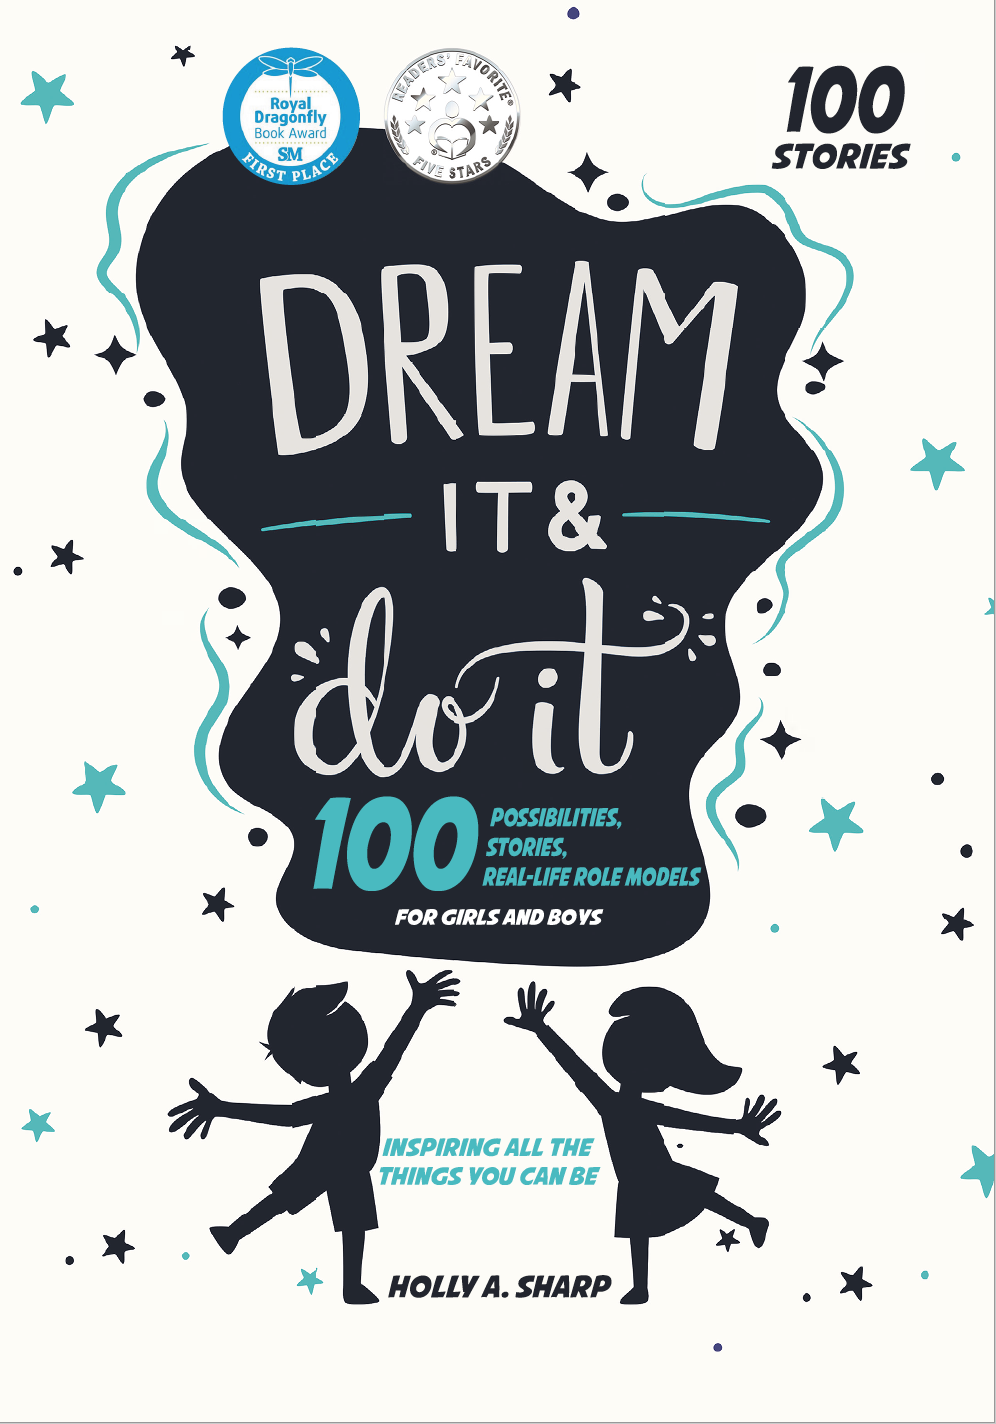 DREAM IT & DO IT by Holly Sharp